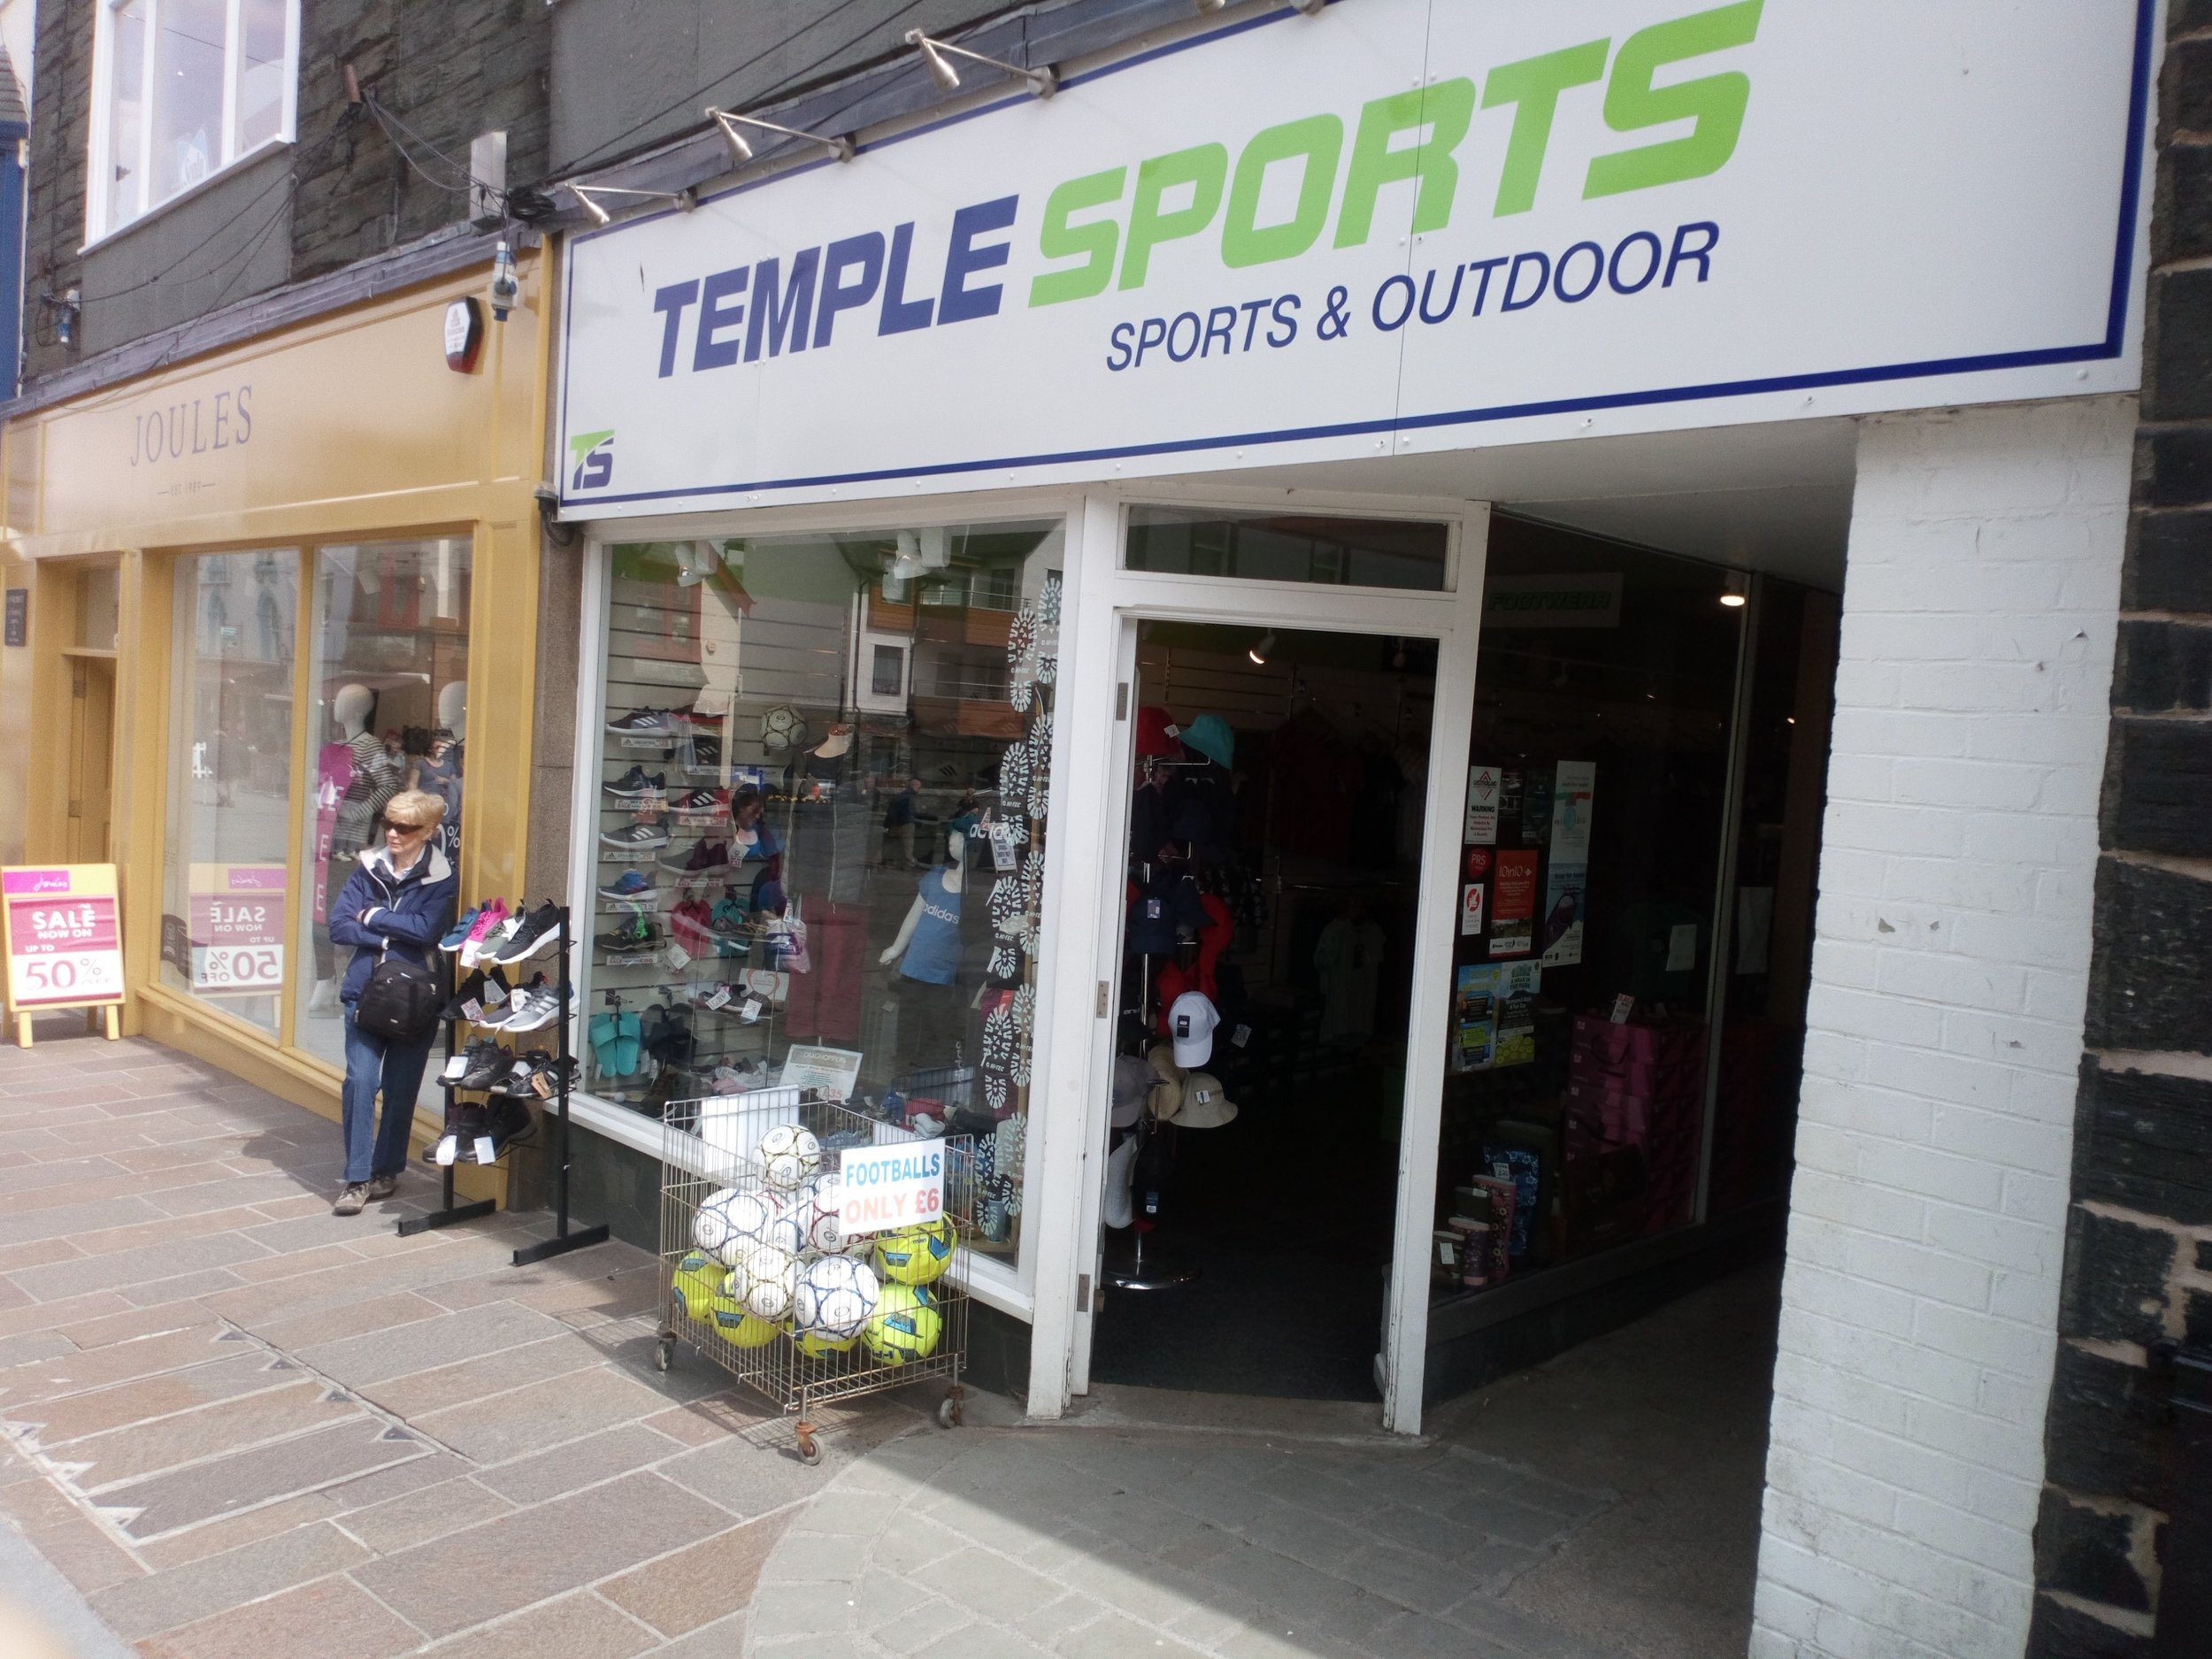 Temple Sports   Temple Sports is an independently owned family business providing sports and outdoor wear and equipment. Stocking ranges from Adidas, Nike, Hi-Tec, Skechers and Crocs footwear as well as Regatta and Craghopper clothing and Speedo swimwear. Specialising in sports equipment and accessories for all ages and abilities we are available to advise you on the best equipment for your needs. We pride ourselves on our friendly service and excellent product knowledge.  26 Main Street, Keswick, CA12 5JD  017687 72569